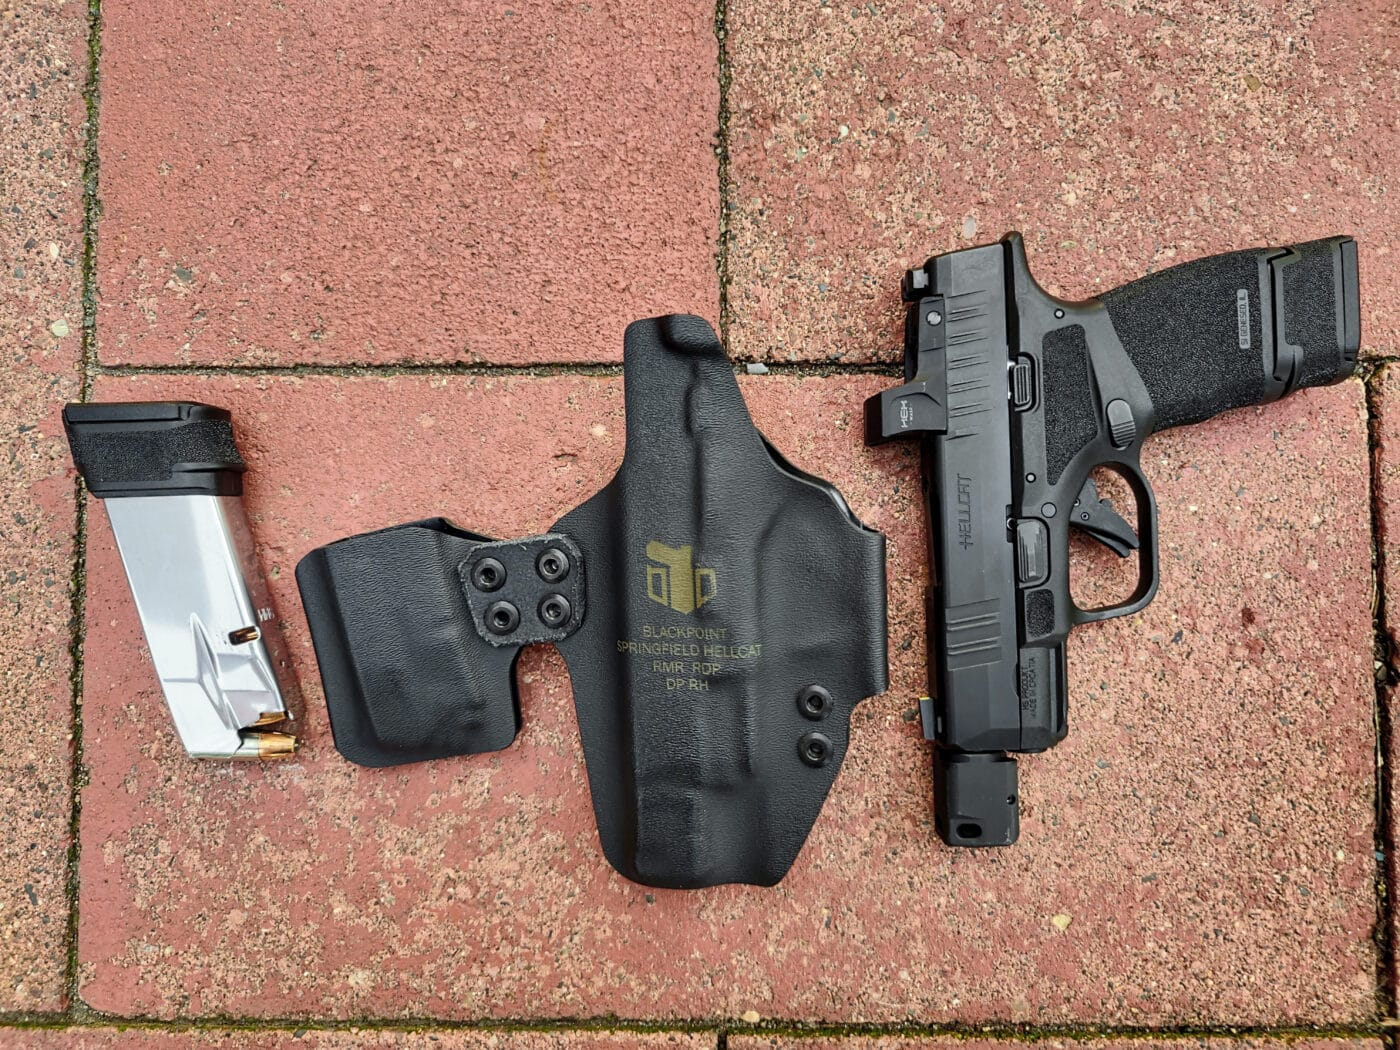 Hellcat pistol and magazine shown with DualPoint AIWB holster